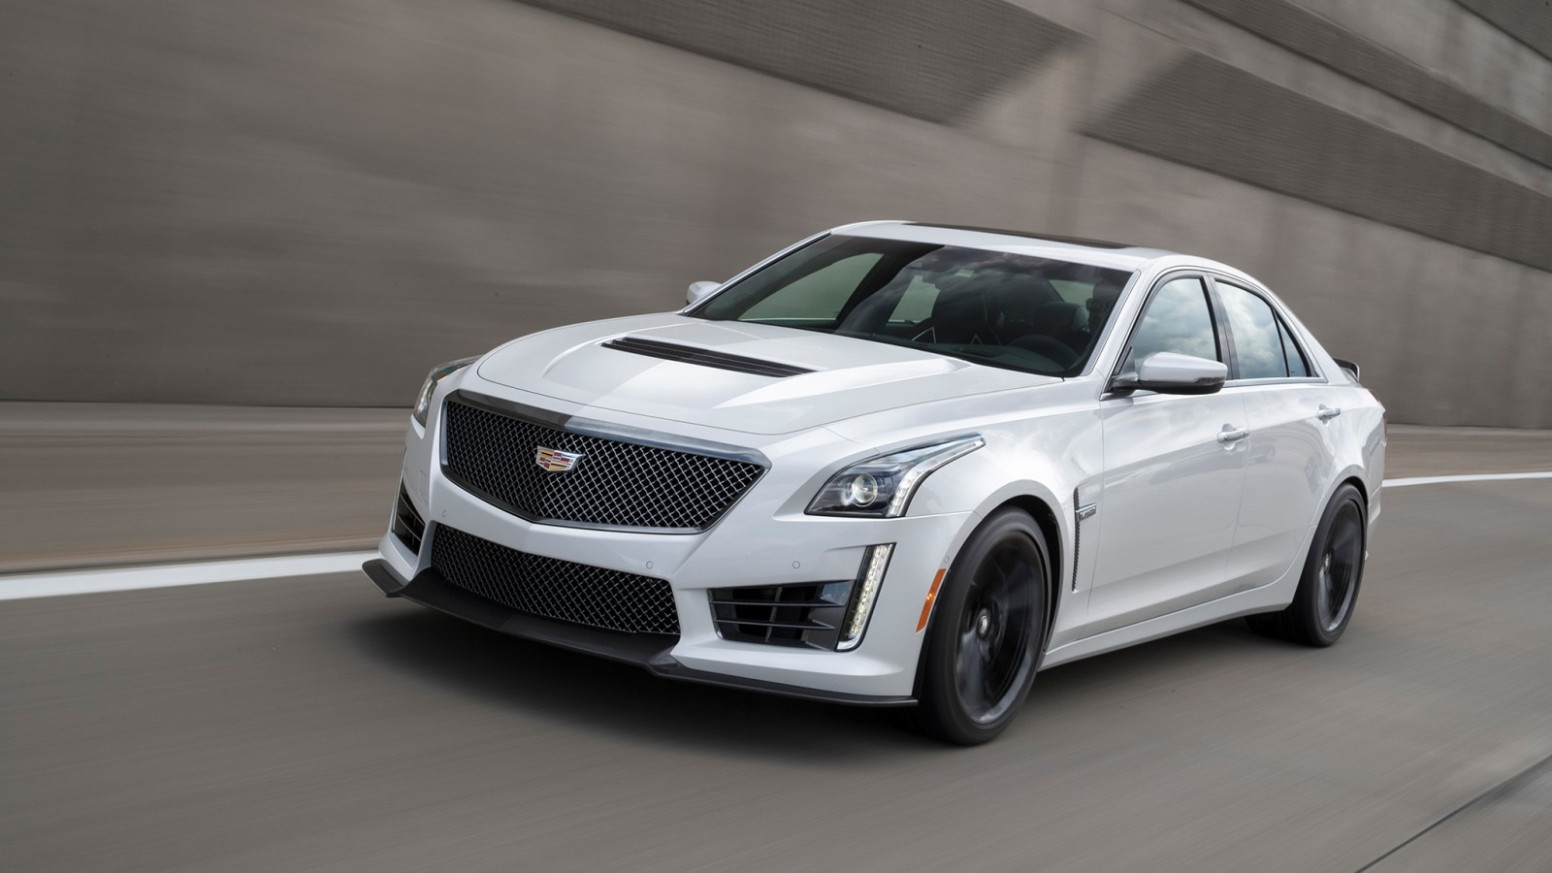 6 Cadillac CTS-V Prices, Reviews, and Pictures | Edmunds